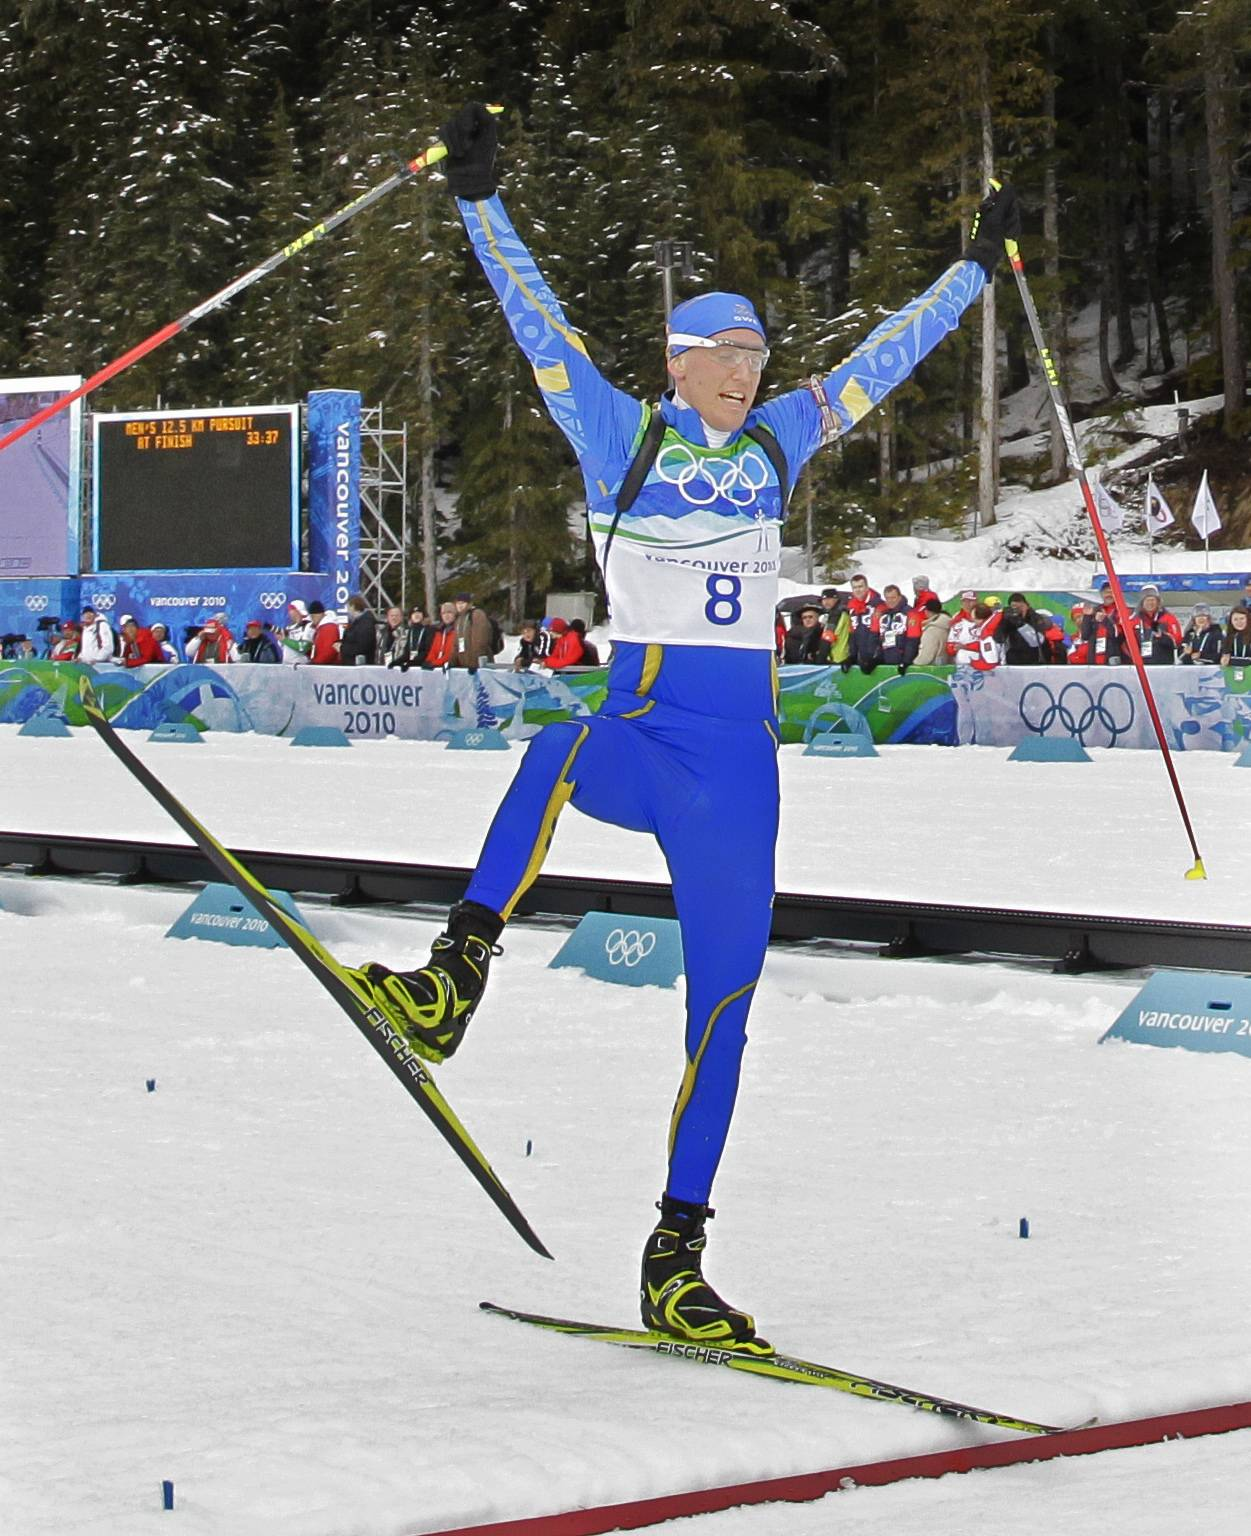 Bjorn Ferry of Sweden won the men's 12.5-kilometer biathlon pursuit for his first Olympic medal.